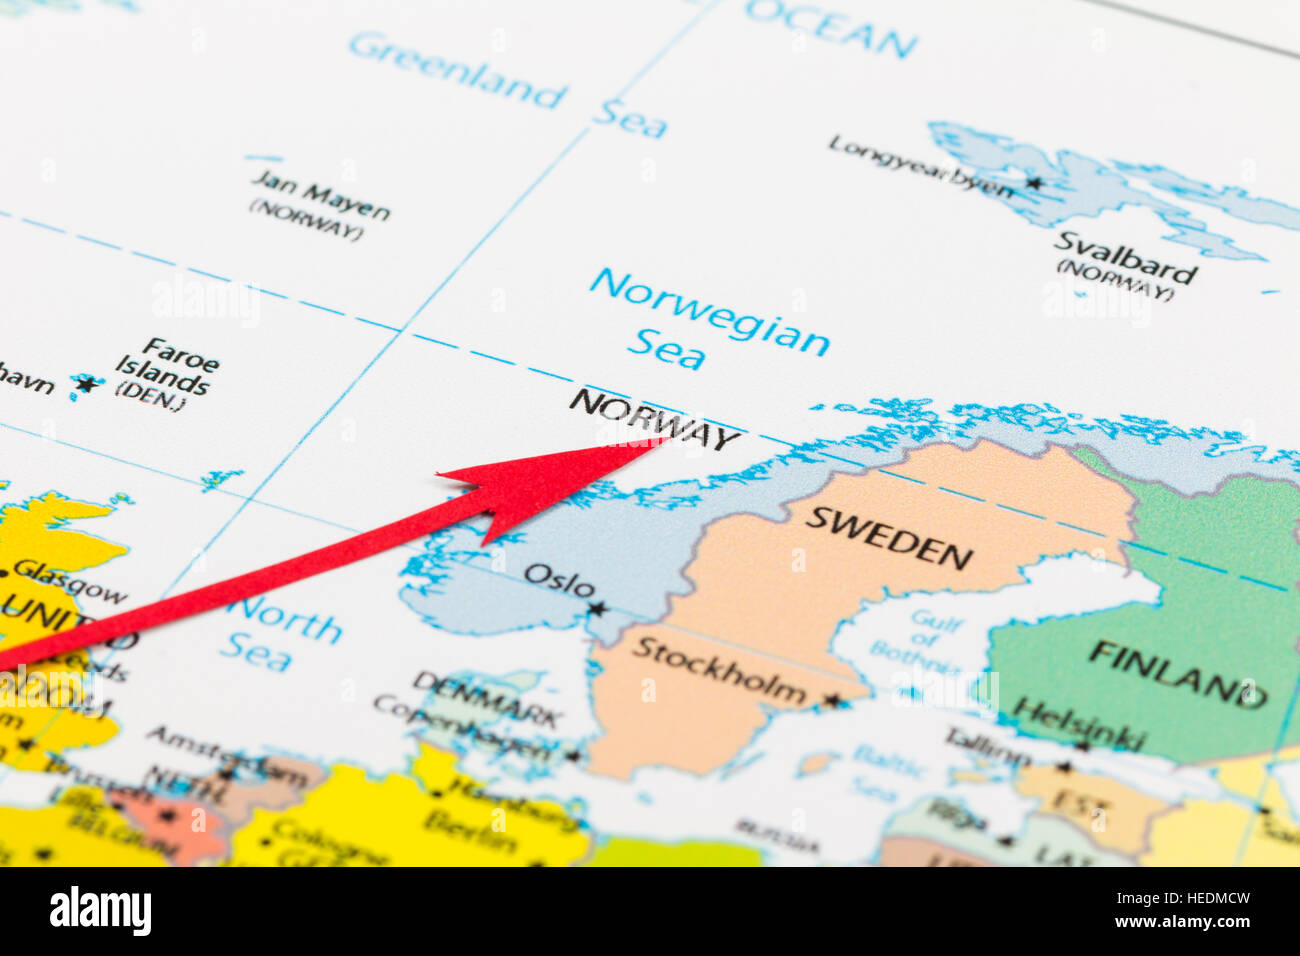 Norway On Europe Map.Red Arrow Pointing Norway On The Map Of Europe Continent Stock Photo